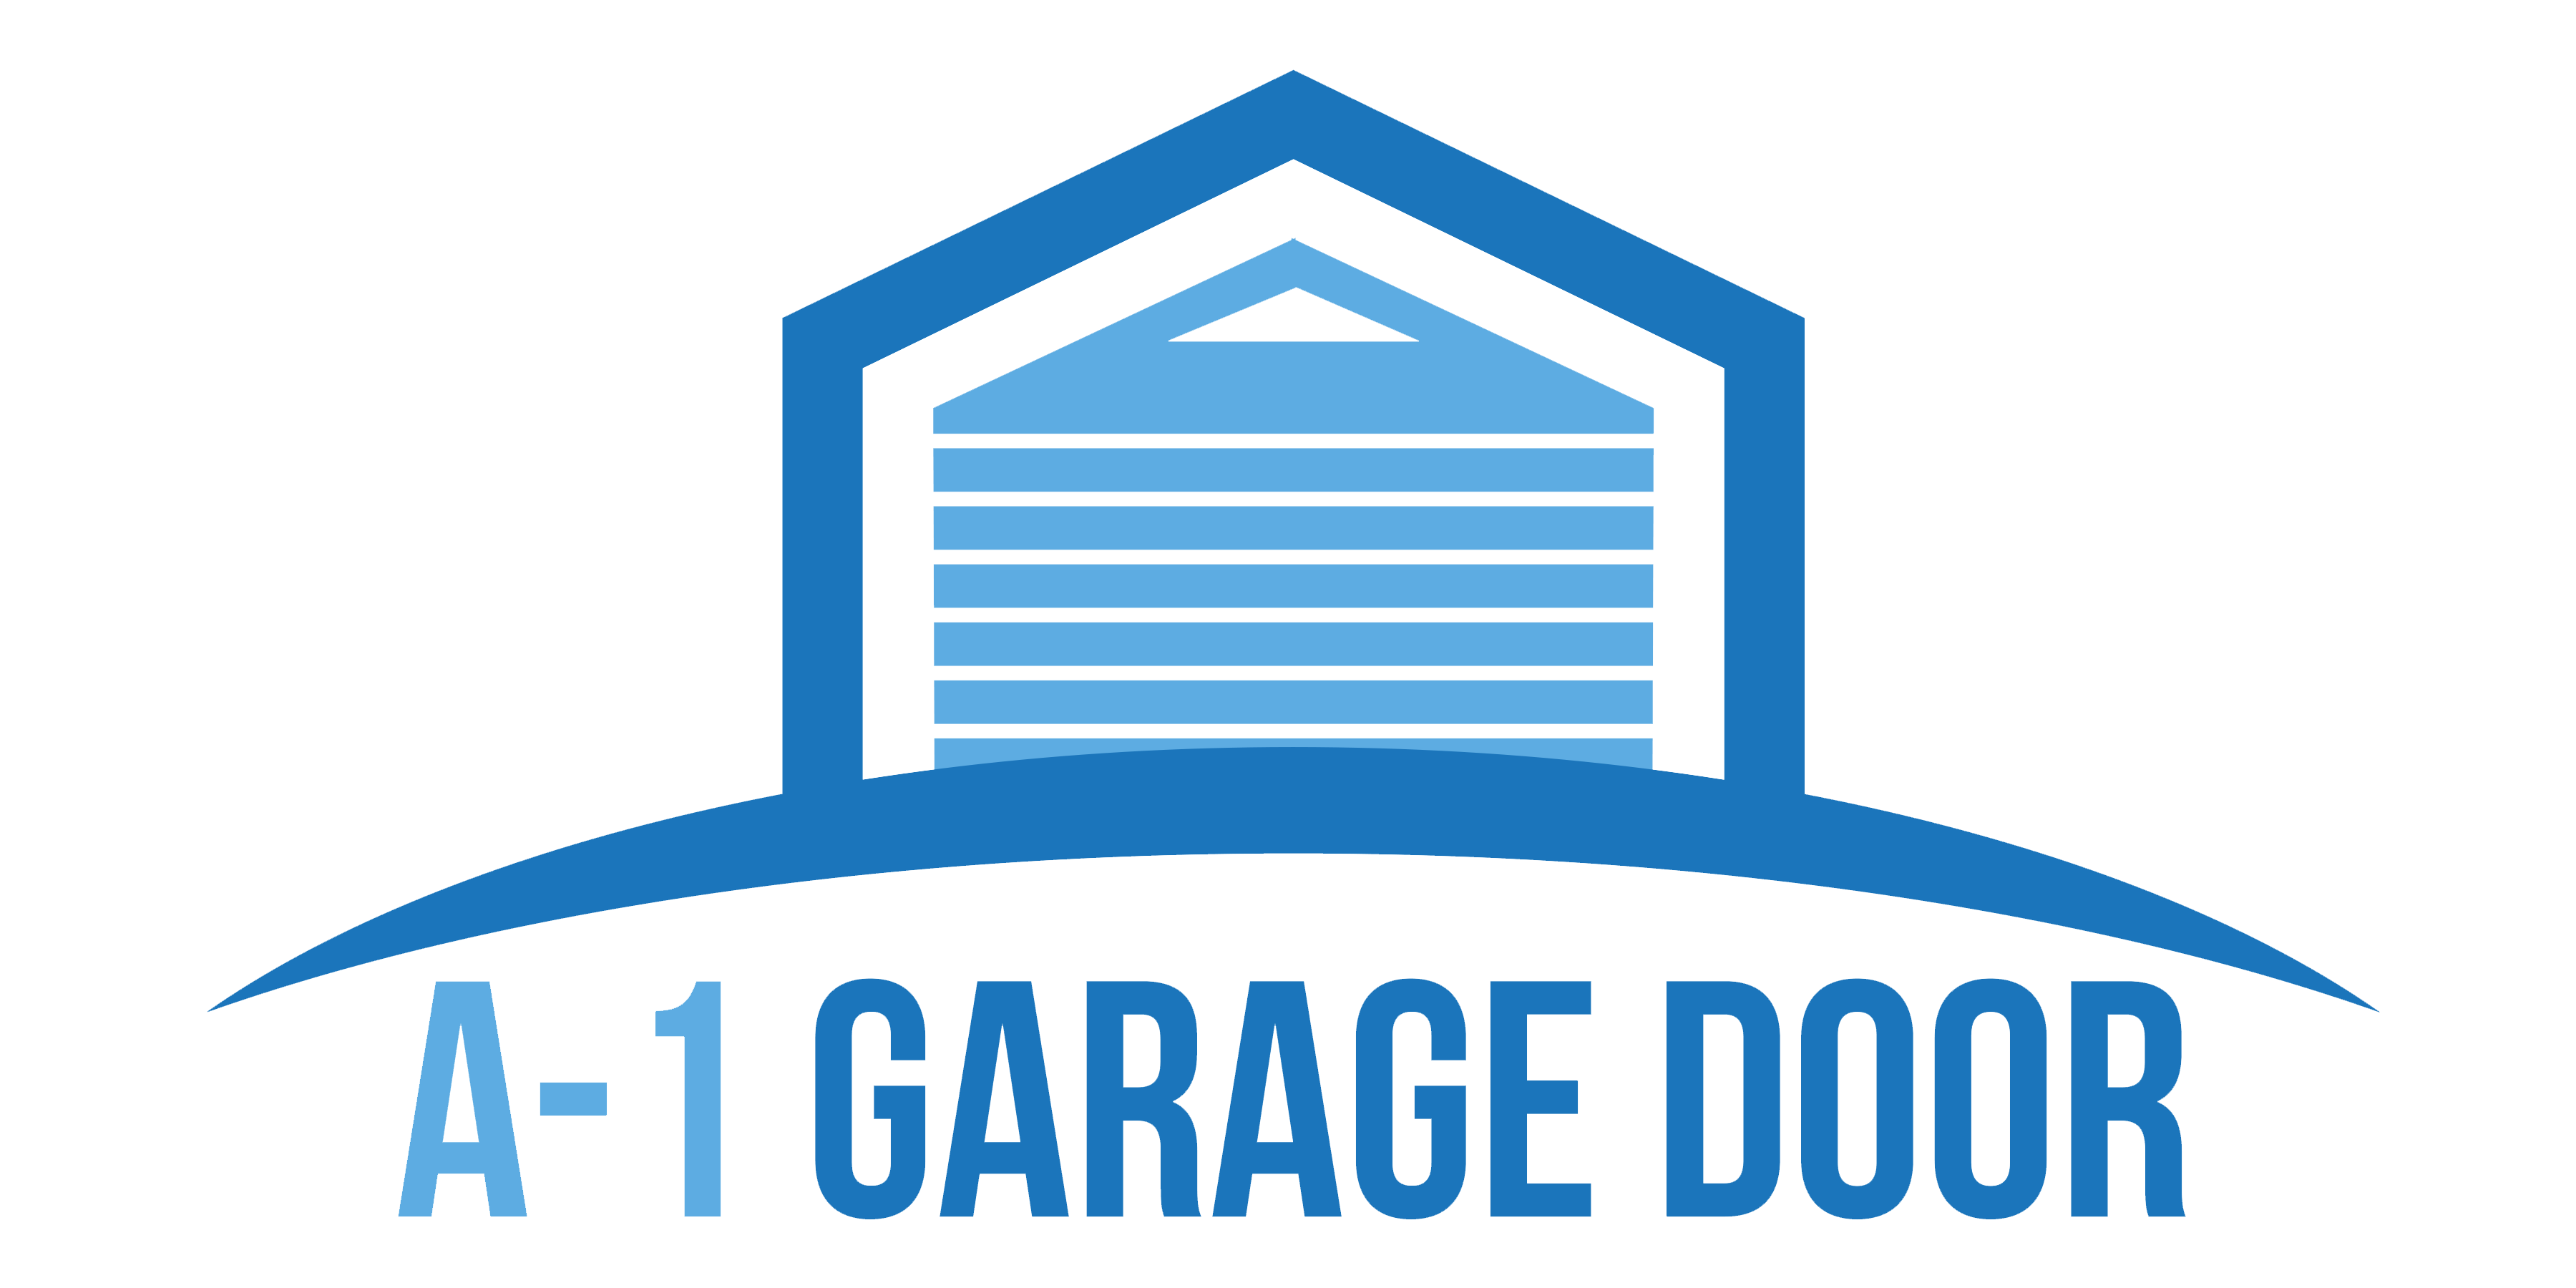 garage quality providing technicians certified uniformed doors full by a specially and repaired in is we specialize serviced company door trained installation operated line